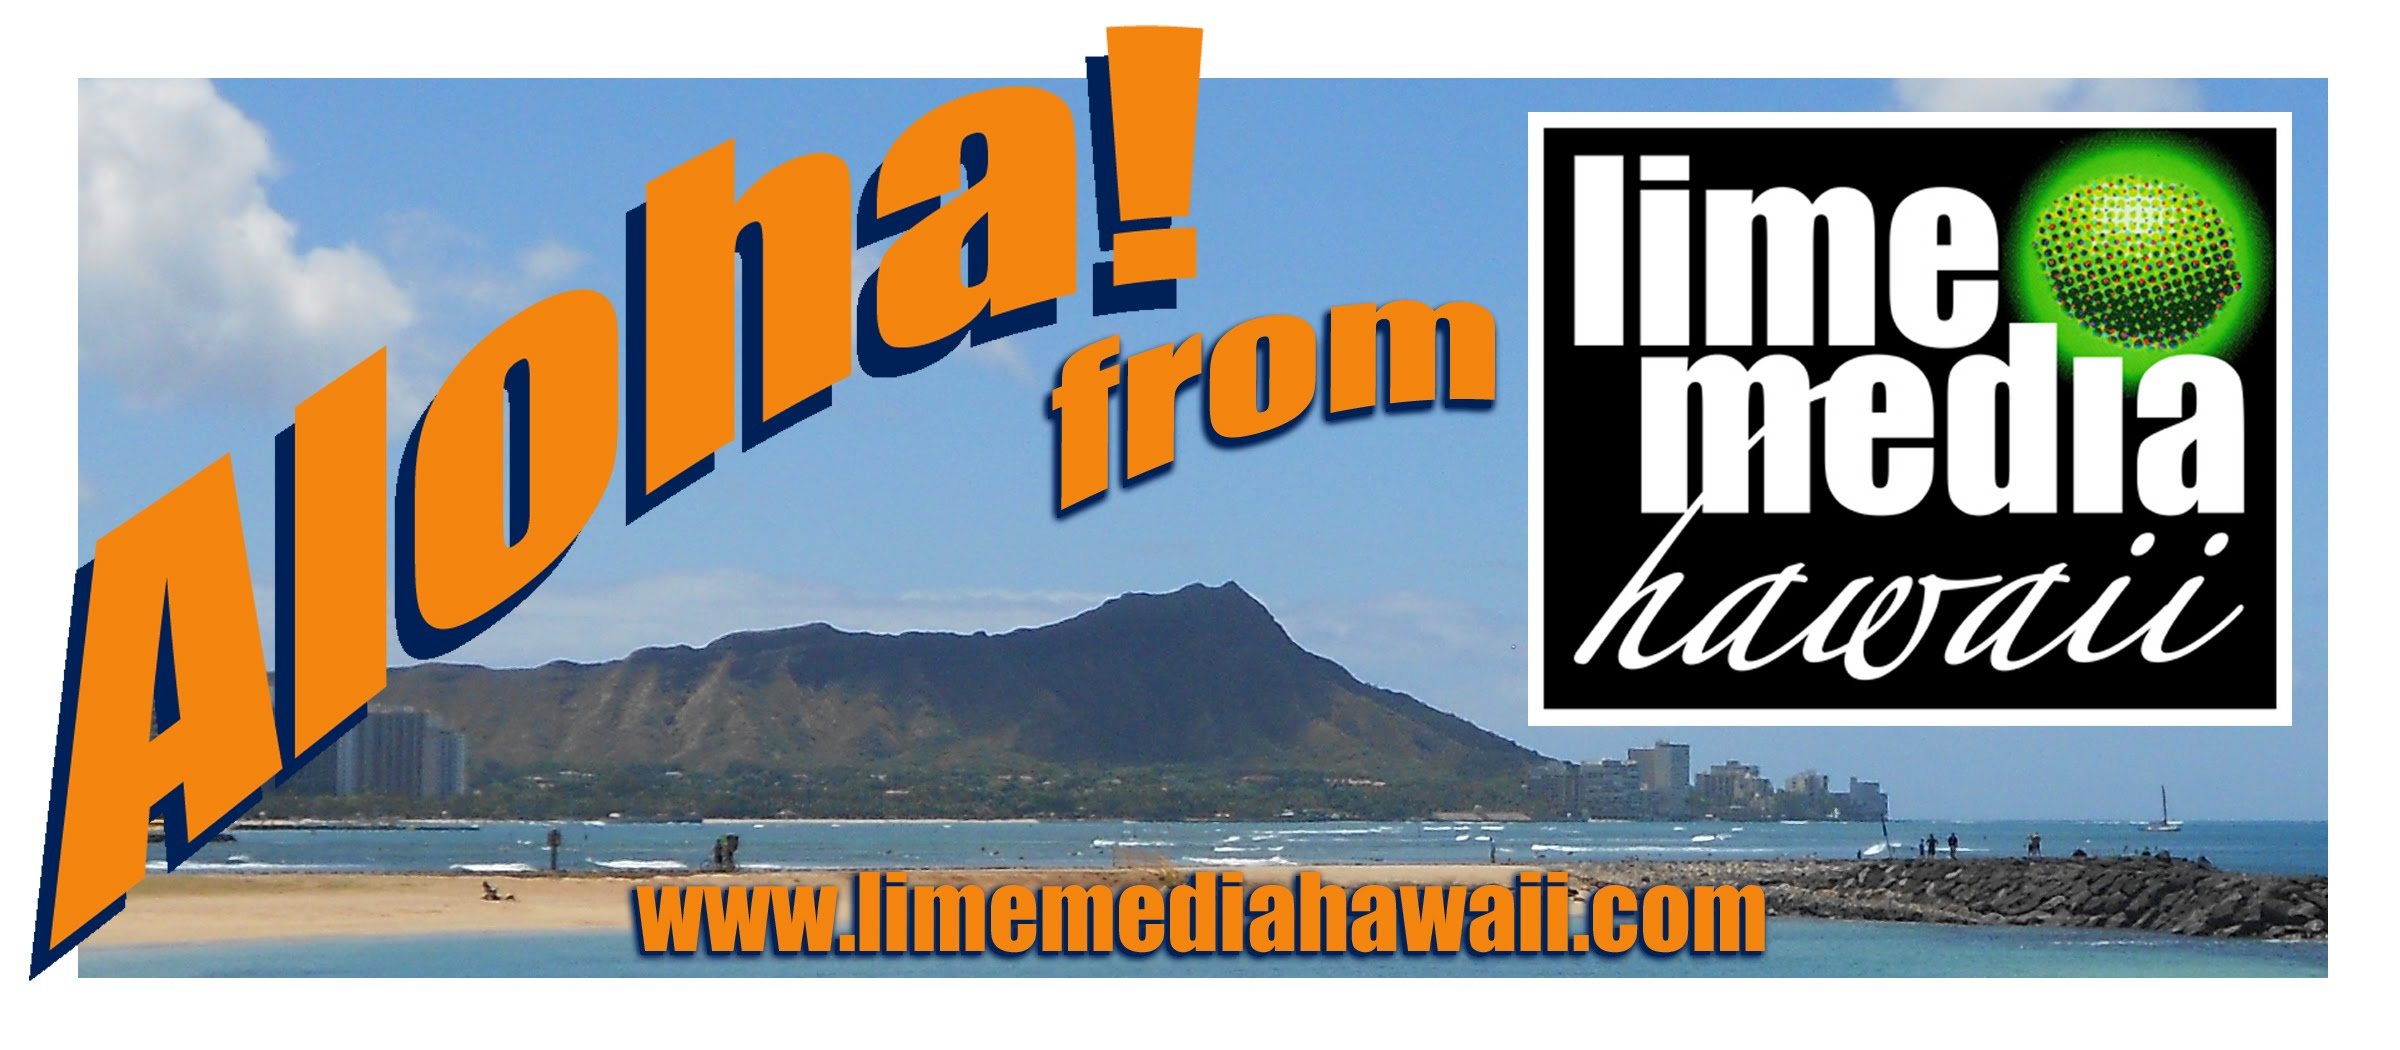 http://www.limemediahawaii.com/lmh-business